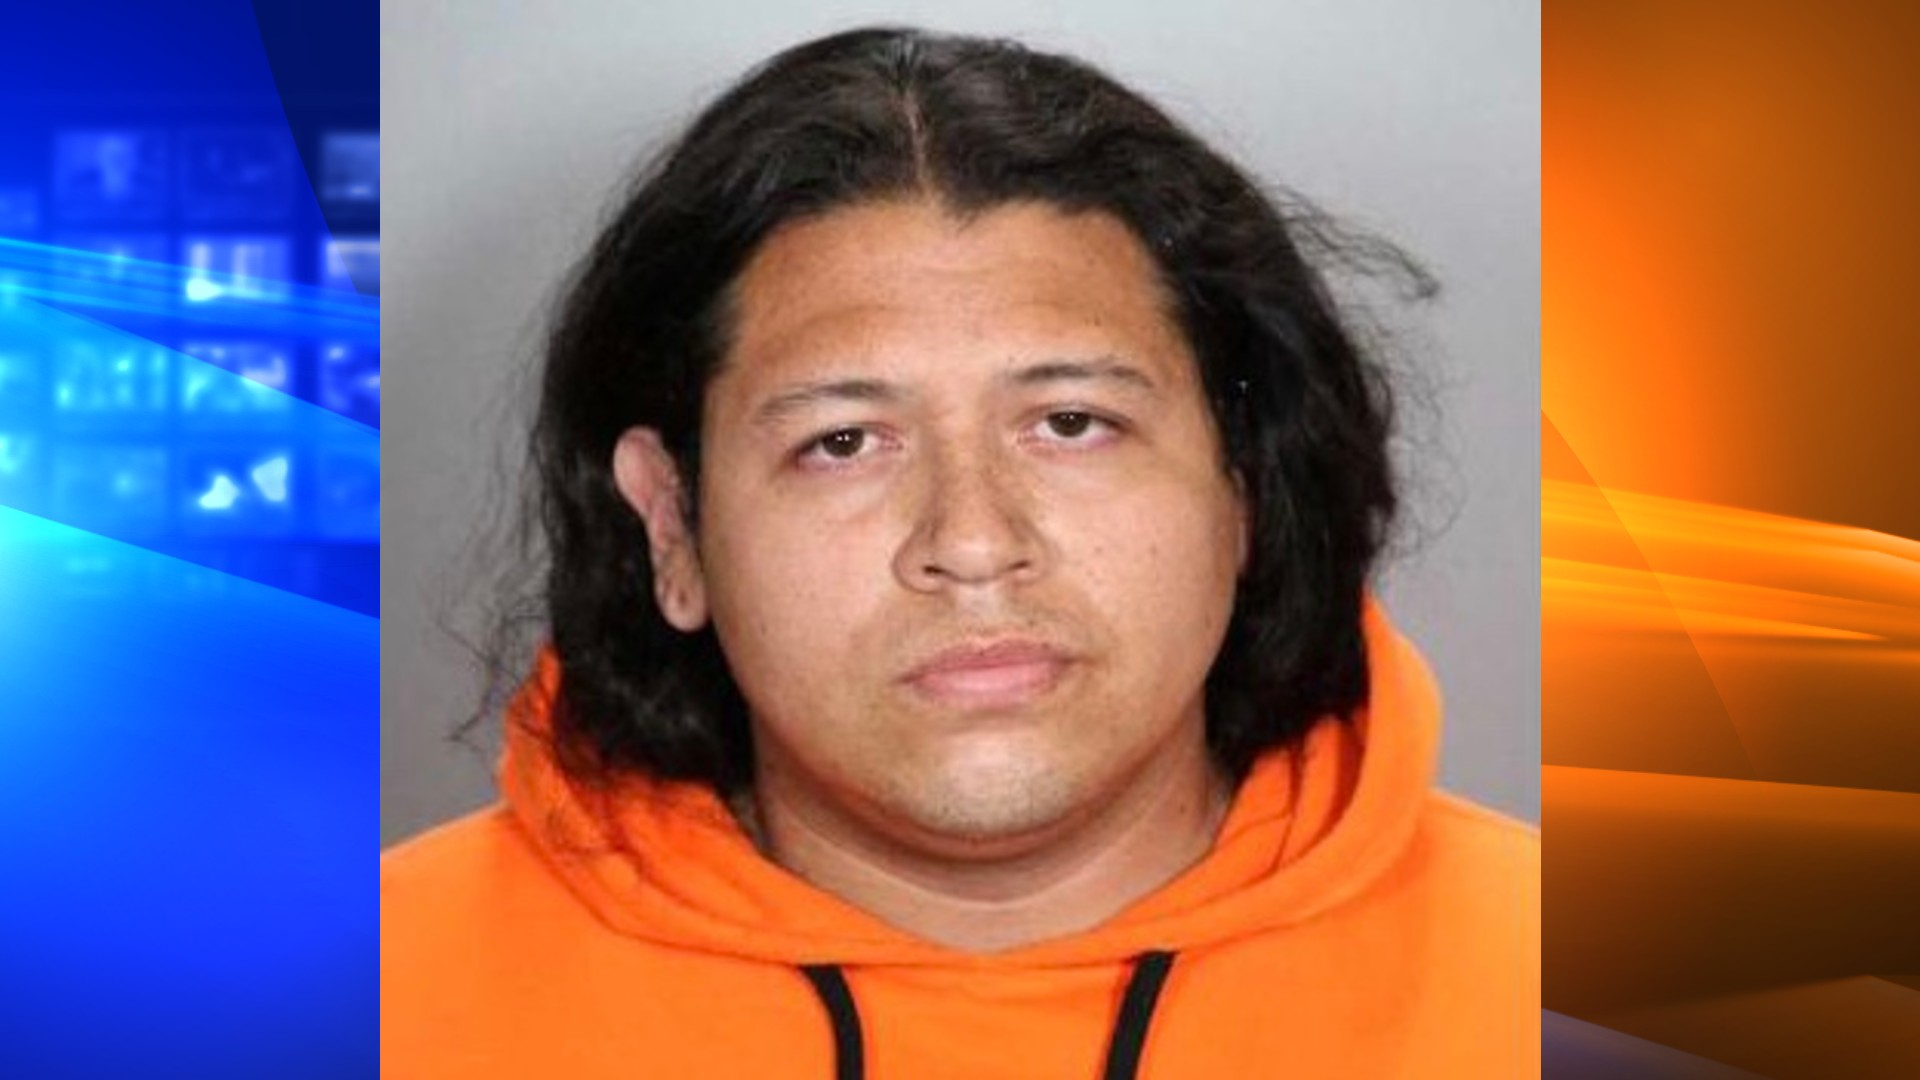 Jaime Castillo, 28, is seen in an undated booking photo released by the Santa Ana Police Department on June 23, 2020.